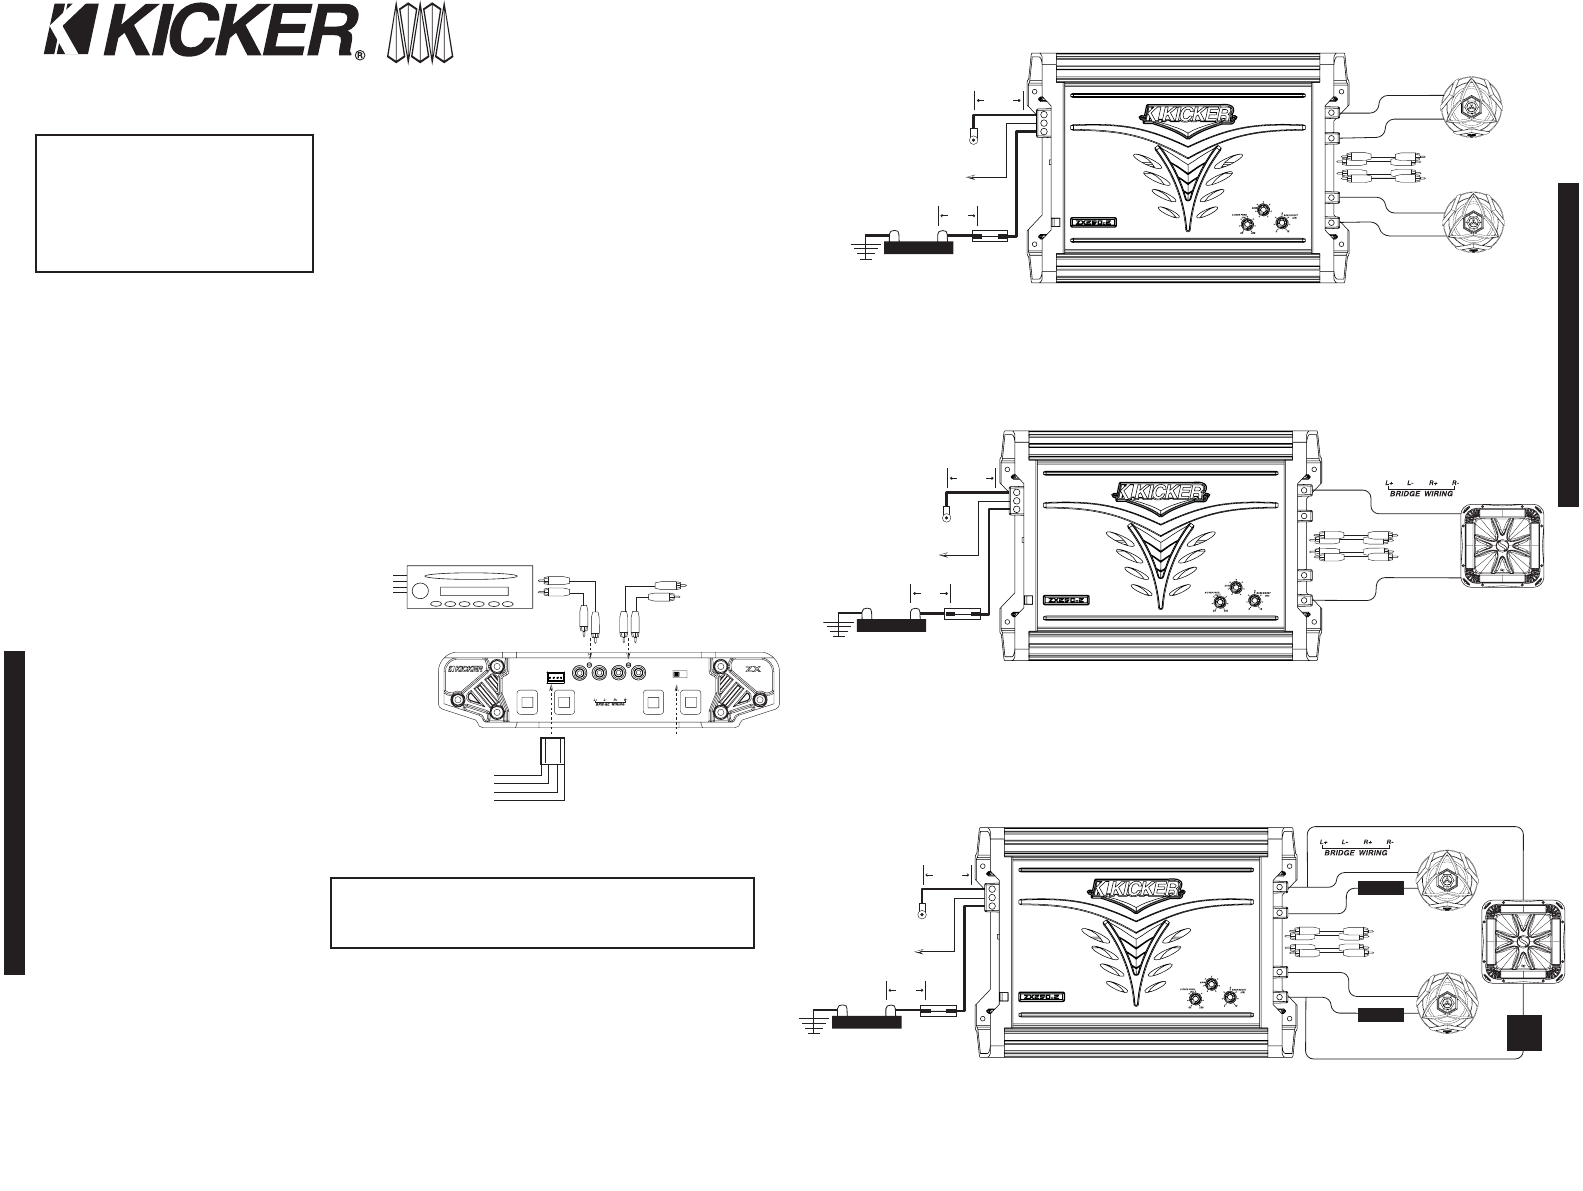 d8fef62e 2335 6764 c115 829ed713b627 bg2 page 2 of kicker stereo amplifier zx250 2 user guide Kicker Flat Subwoofers at nearapp.co